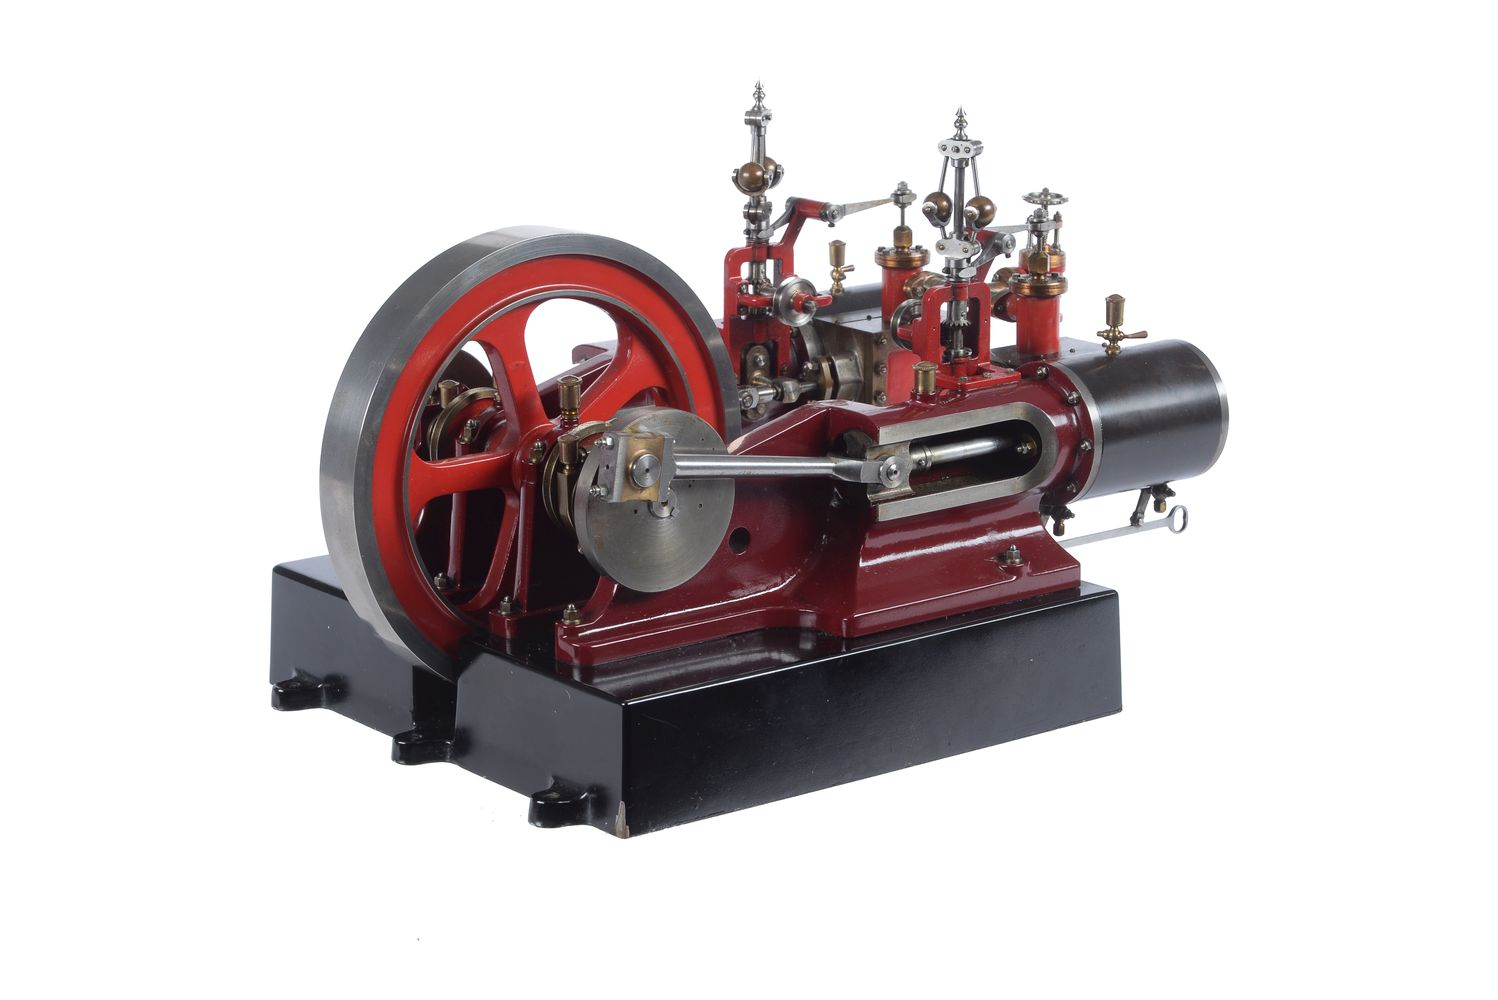 Lot 91 - An exhibition standard model of a double Tangye horizontal mill engine